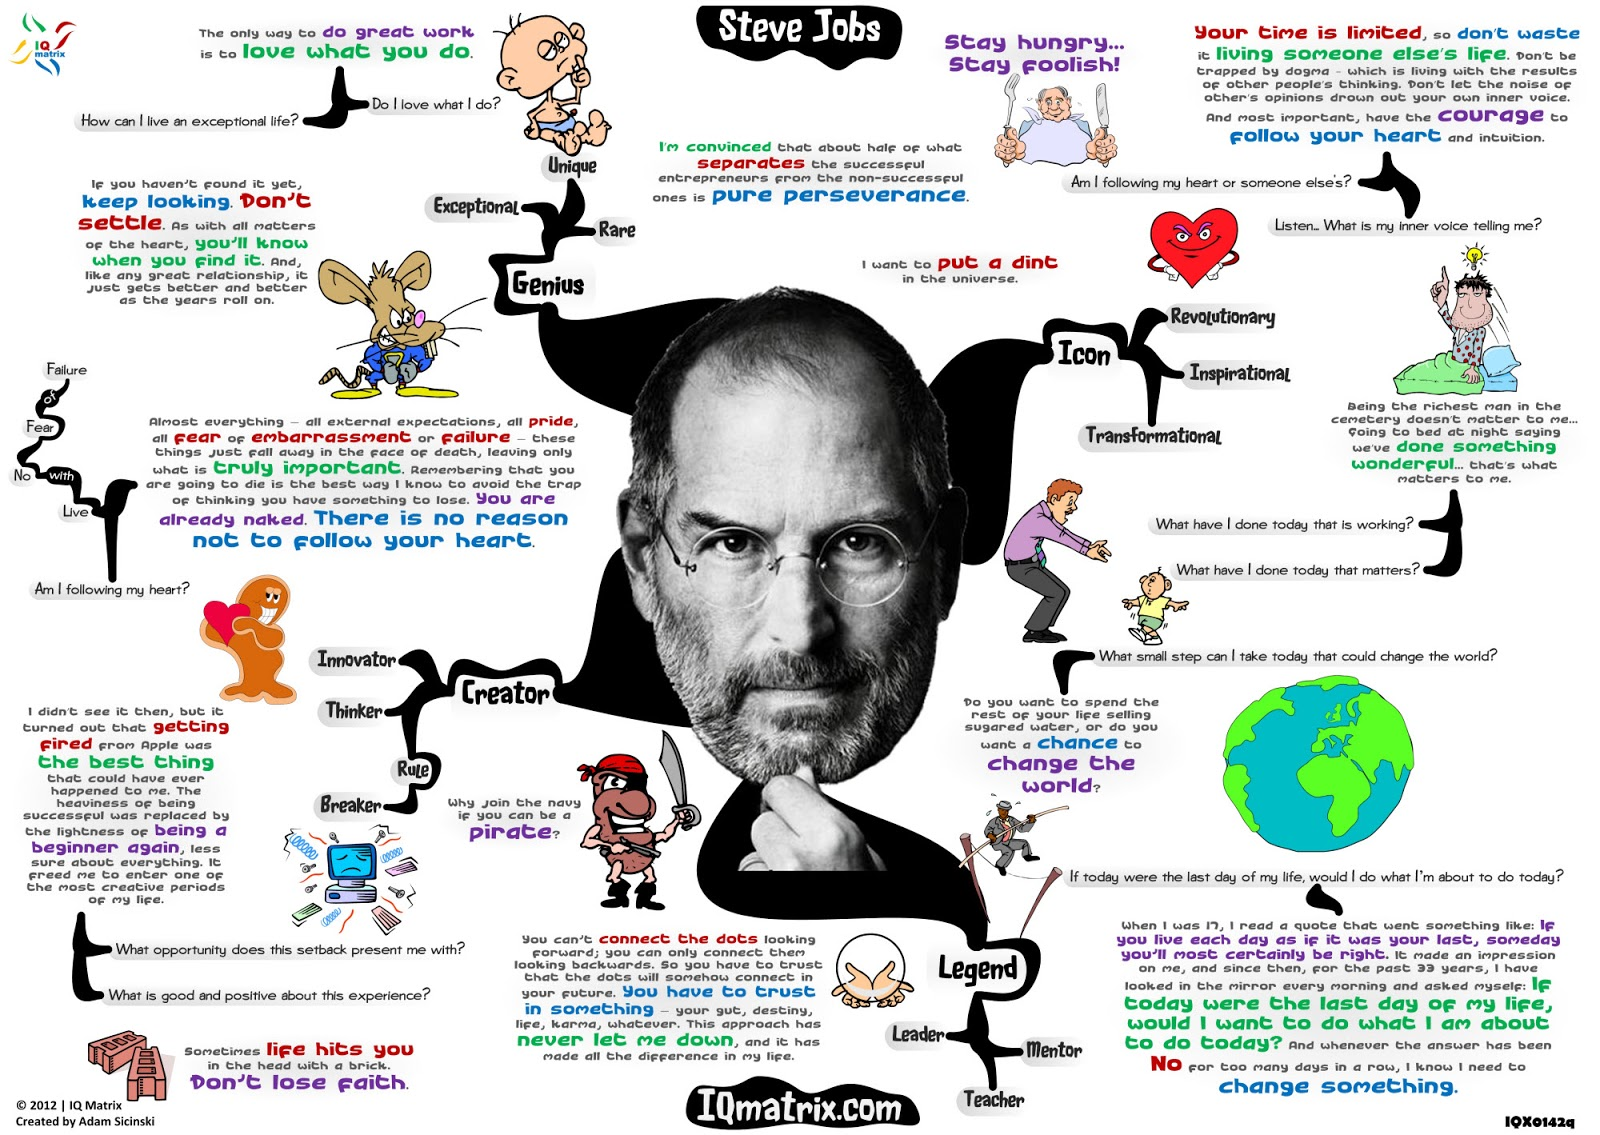 leadership quotes by steve jobs quotesgram